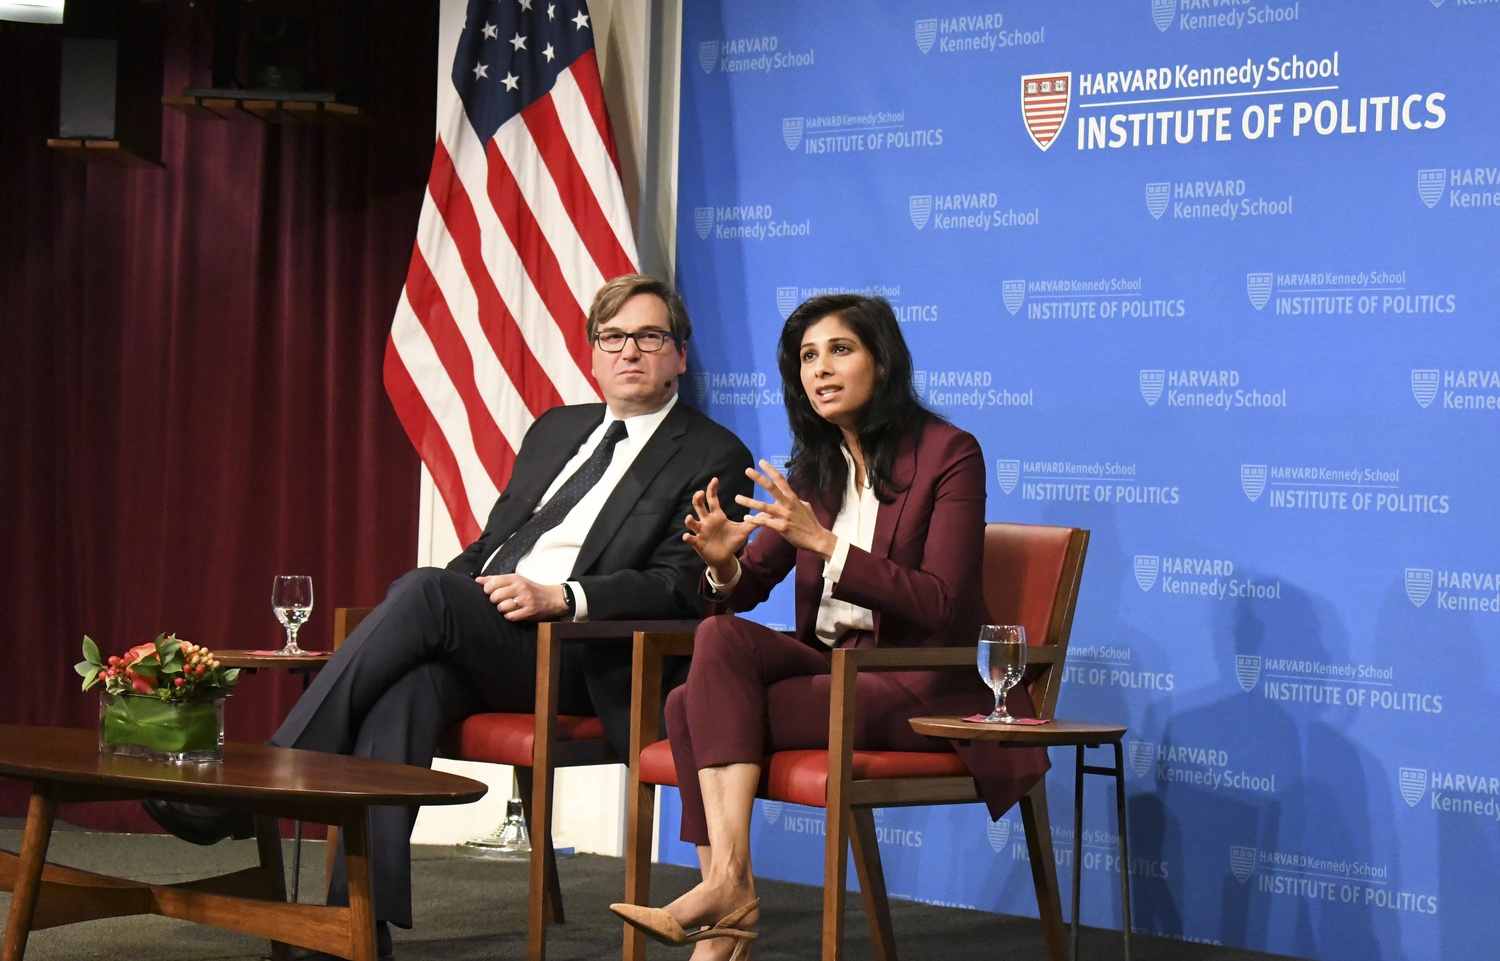 Gita Gopinath, Chief Economist for the International Monetary Fund, discusses future obstacles regarding trade in the global economy at the John F. Kennedy Forum at the Institute of Politics Tuesday night.